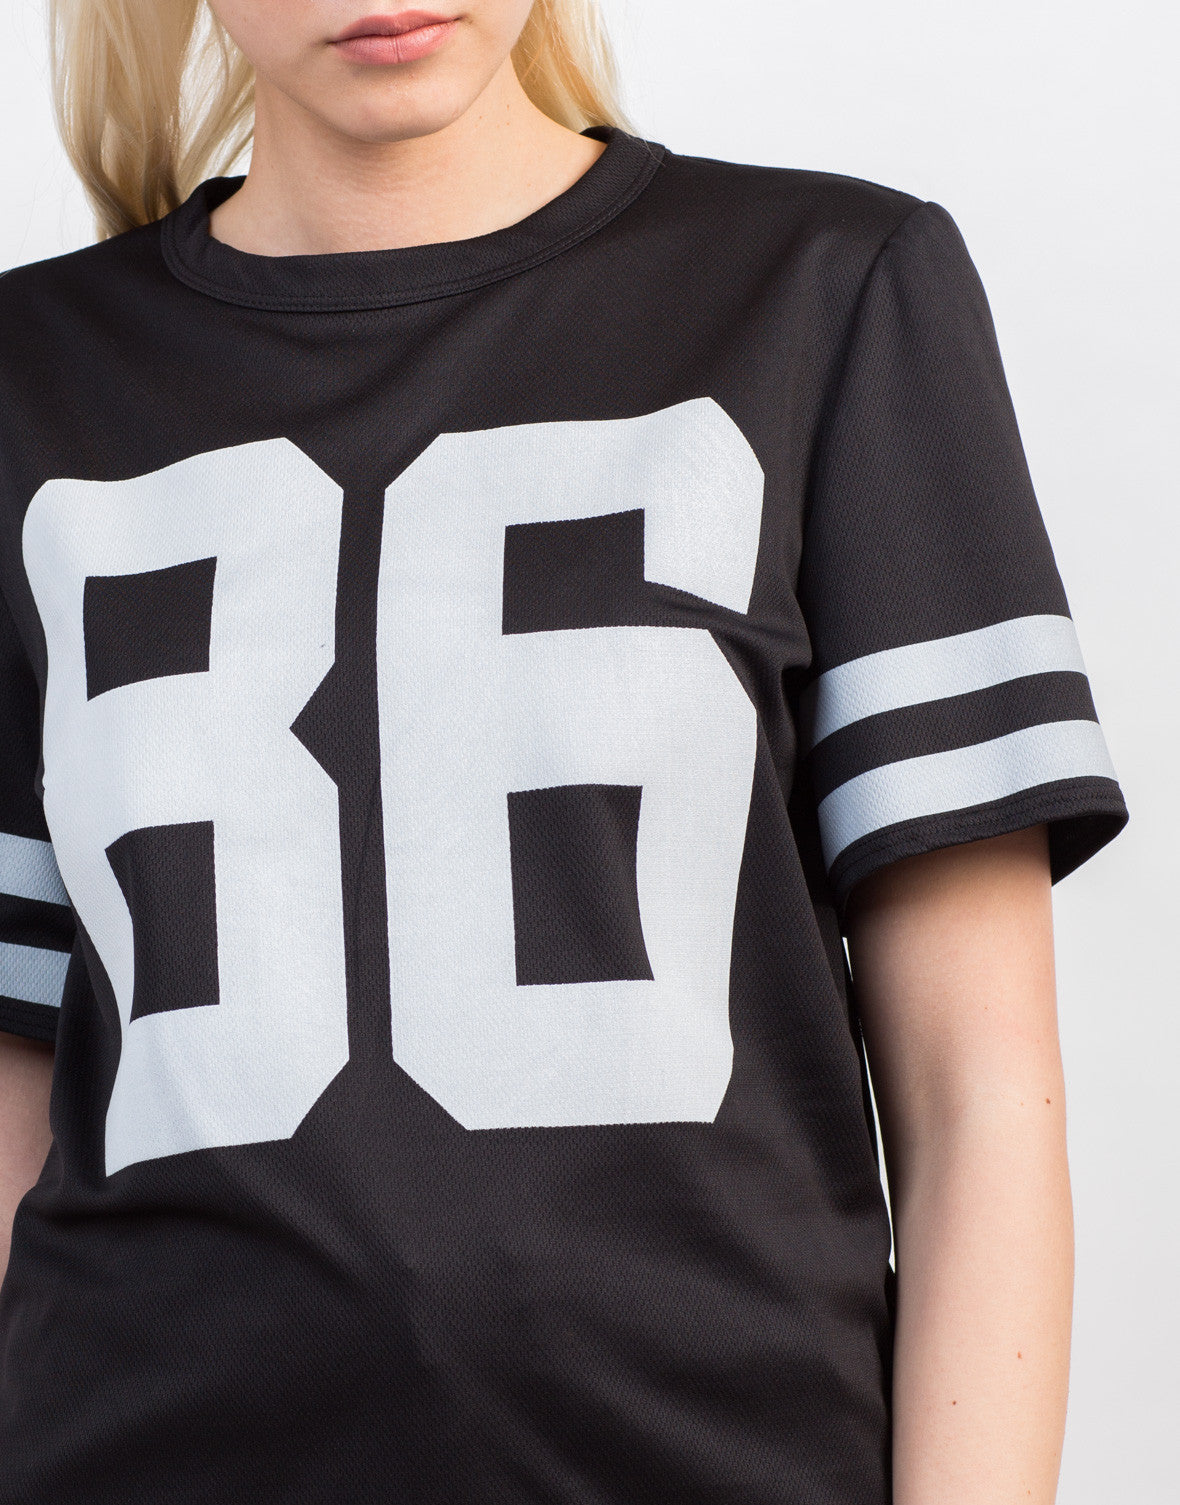 Detail of Sporty Hustle Jersey Tee